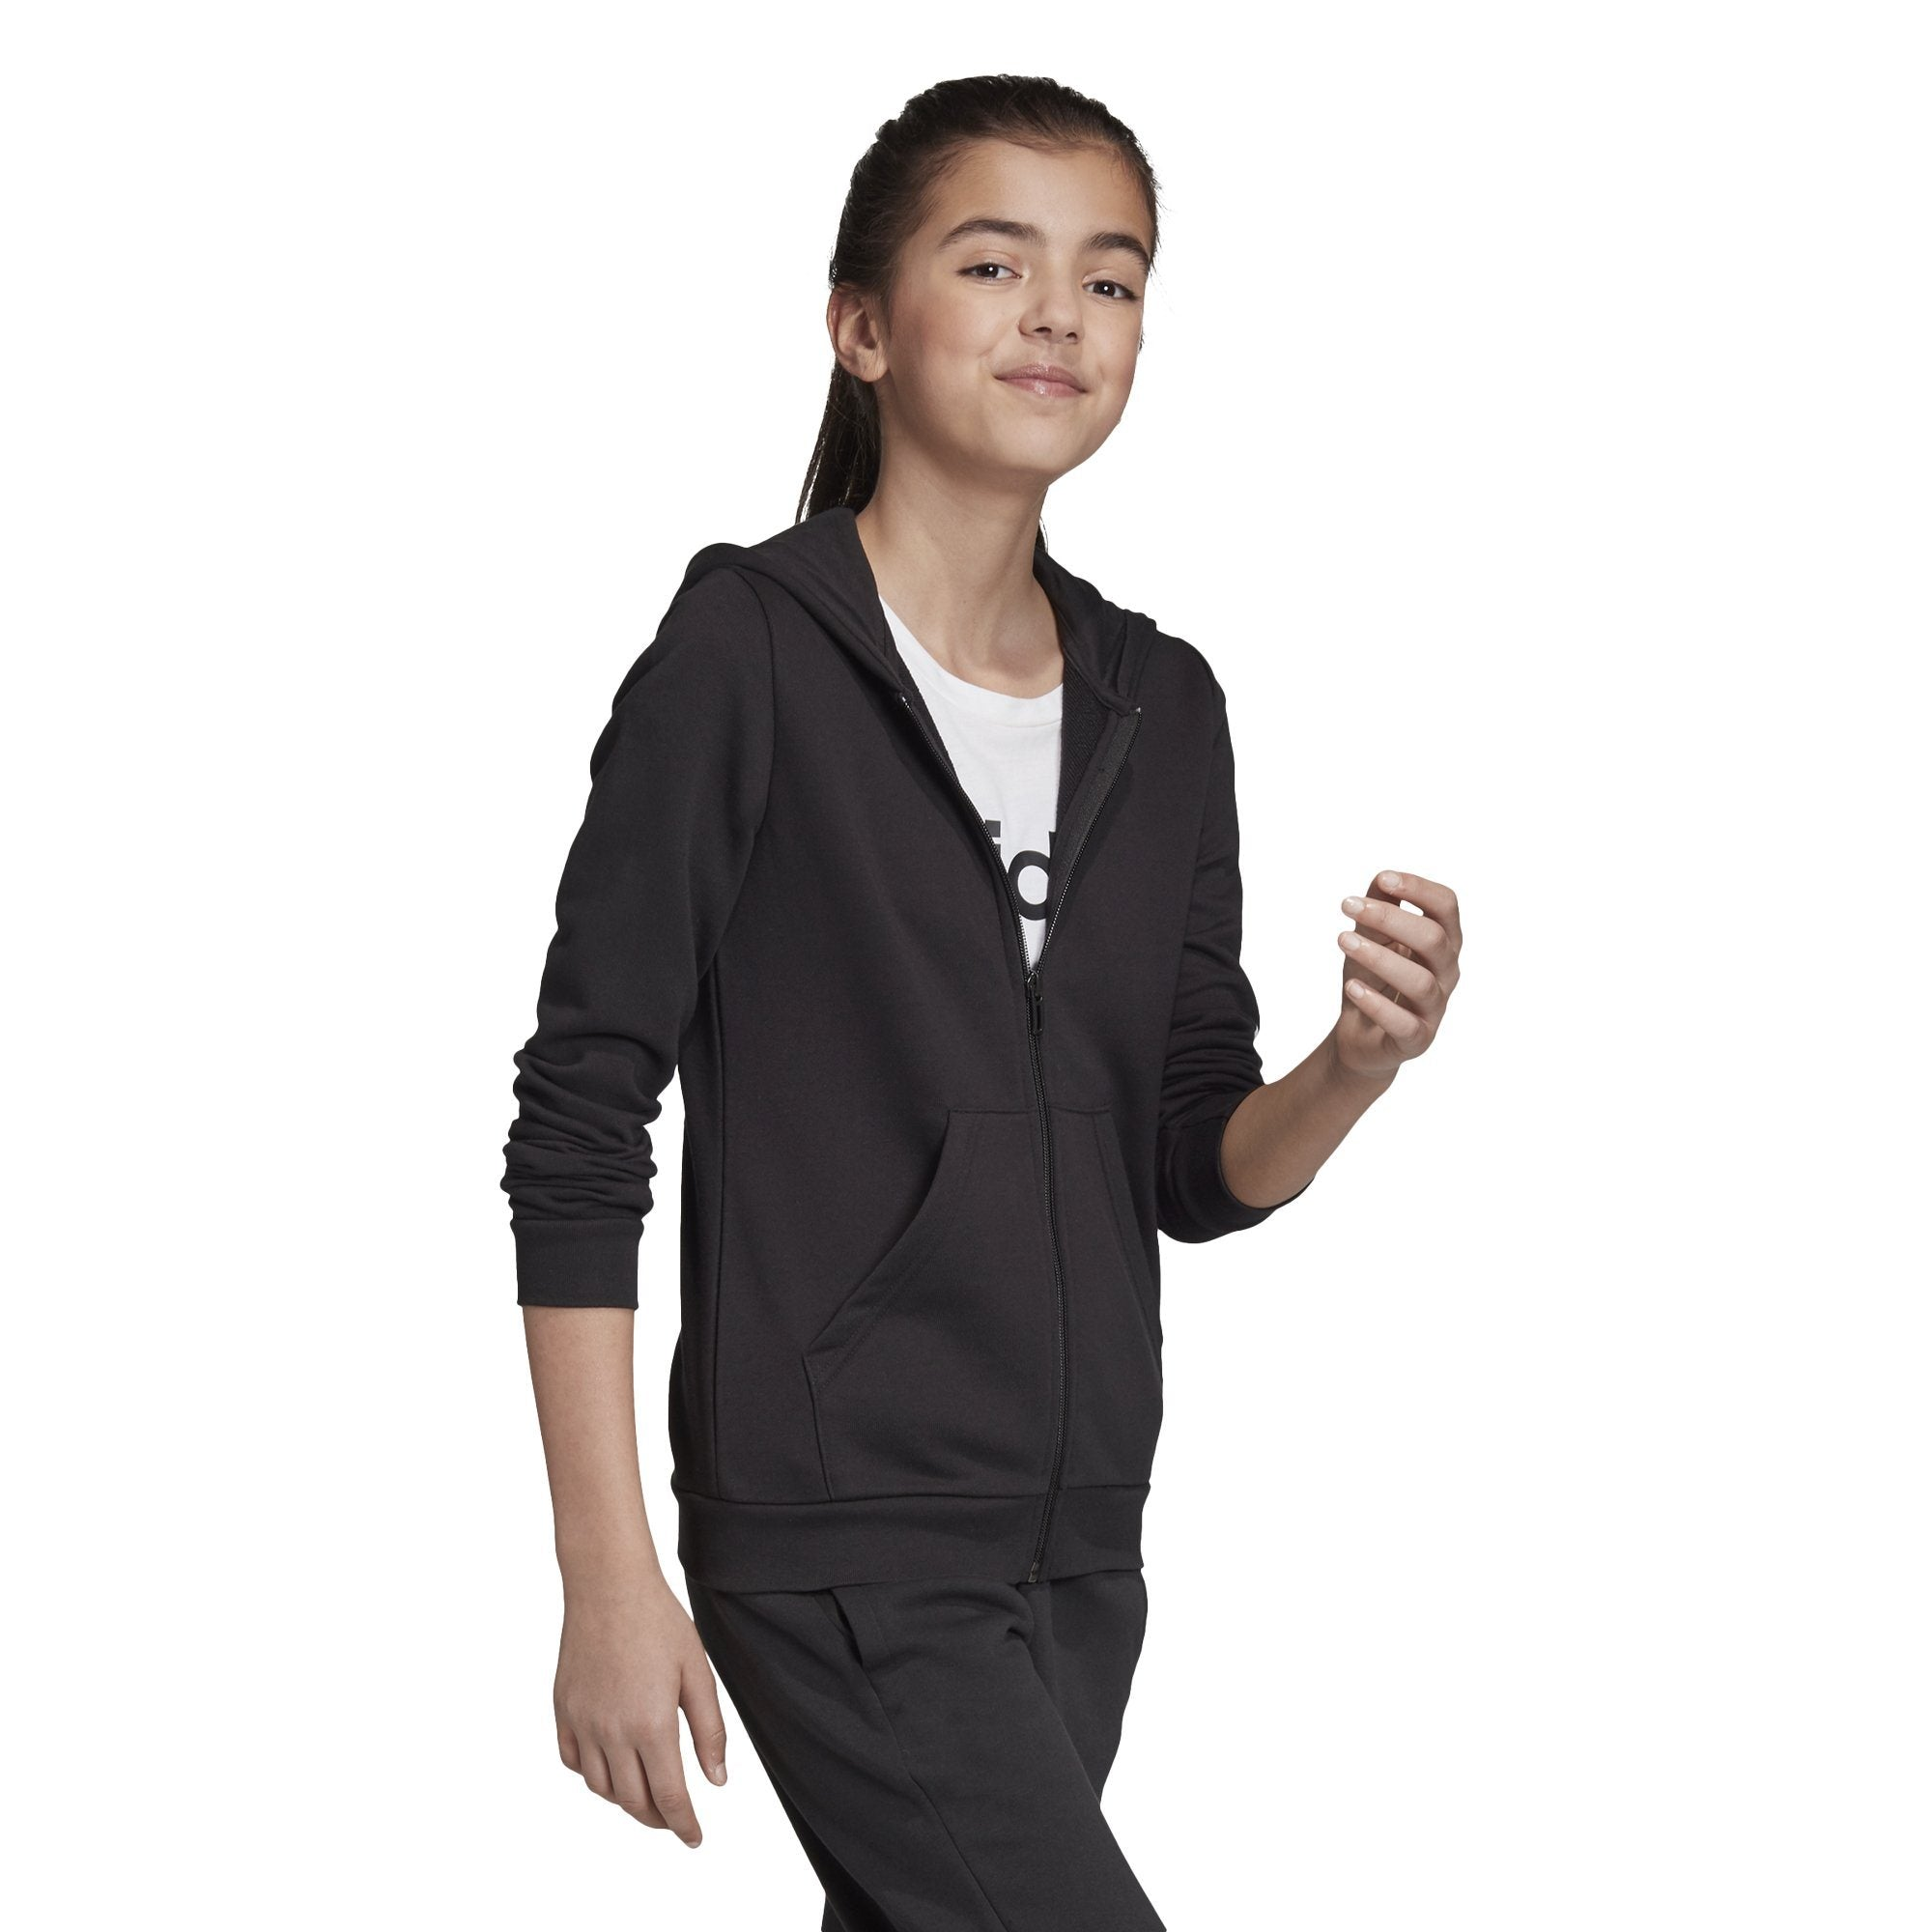 Adidas Girls Essentials Linear Full Zip Hoodie - Black/White SP-ApparelFleece-KidsGirls Adidas